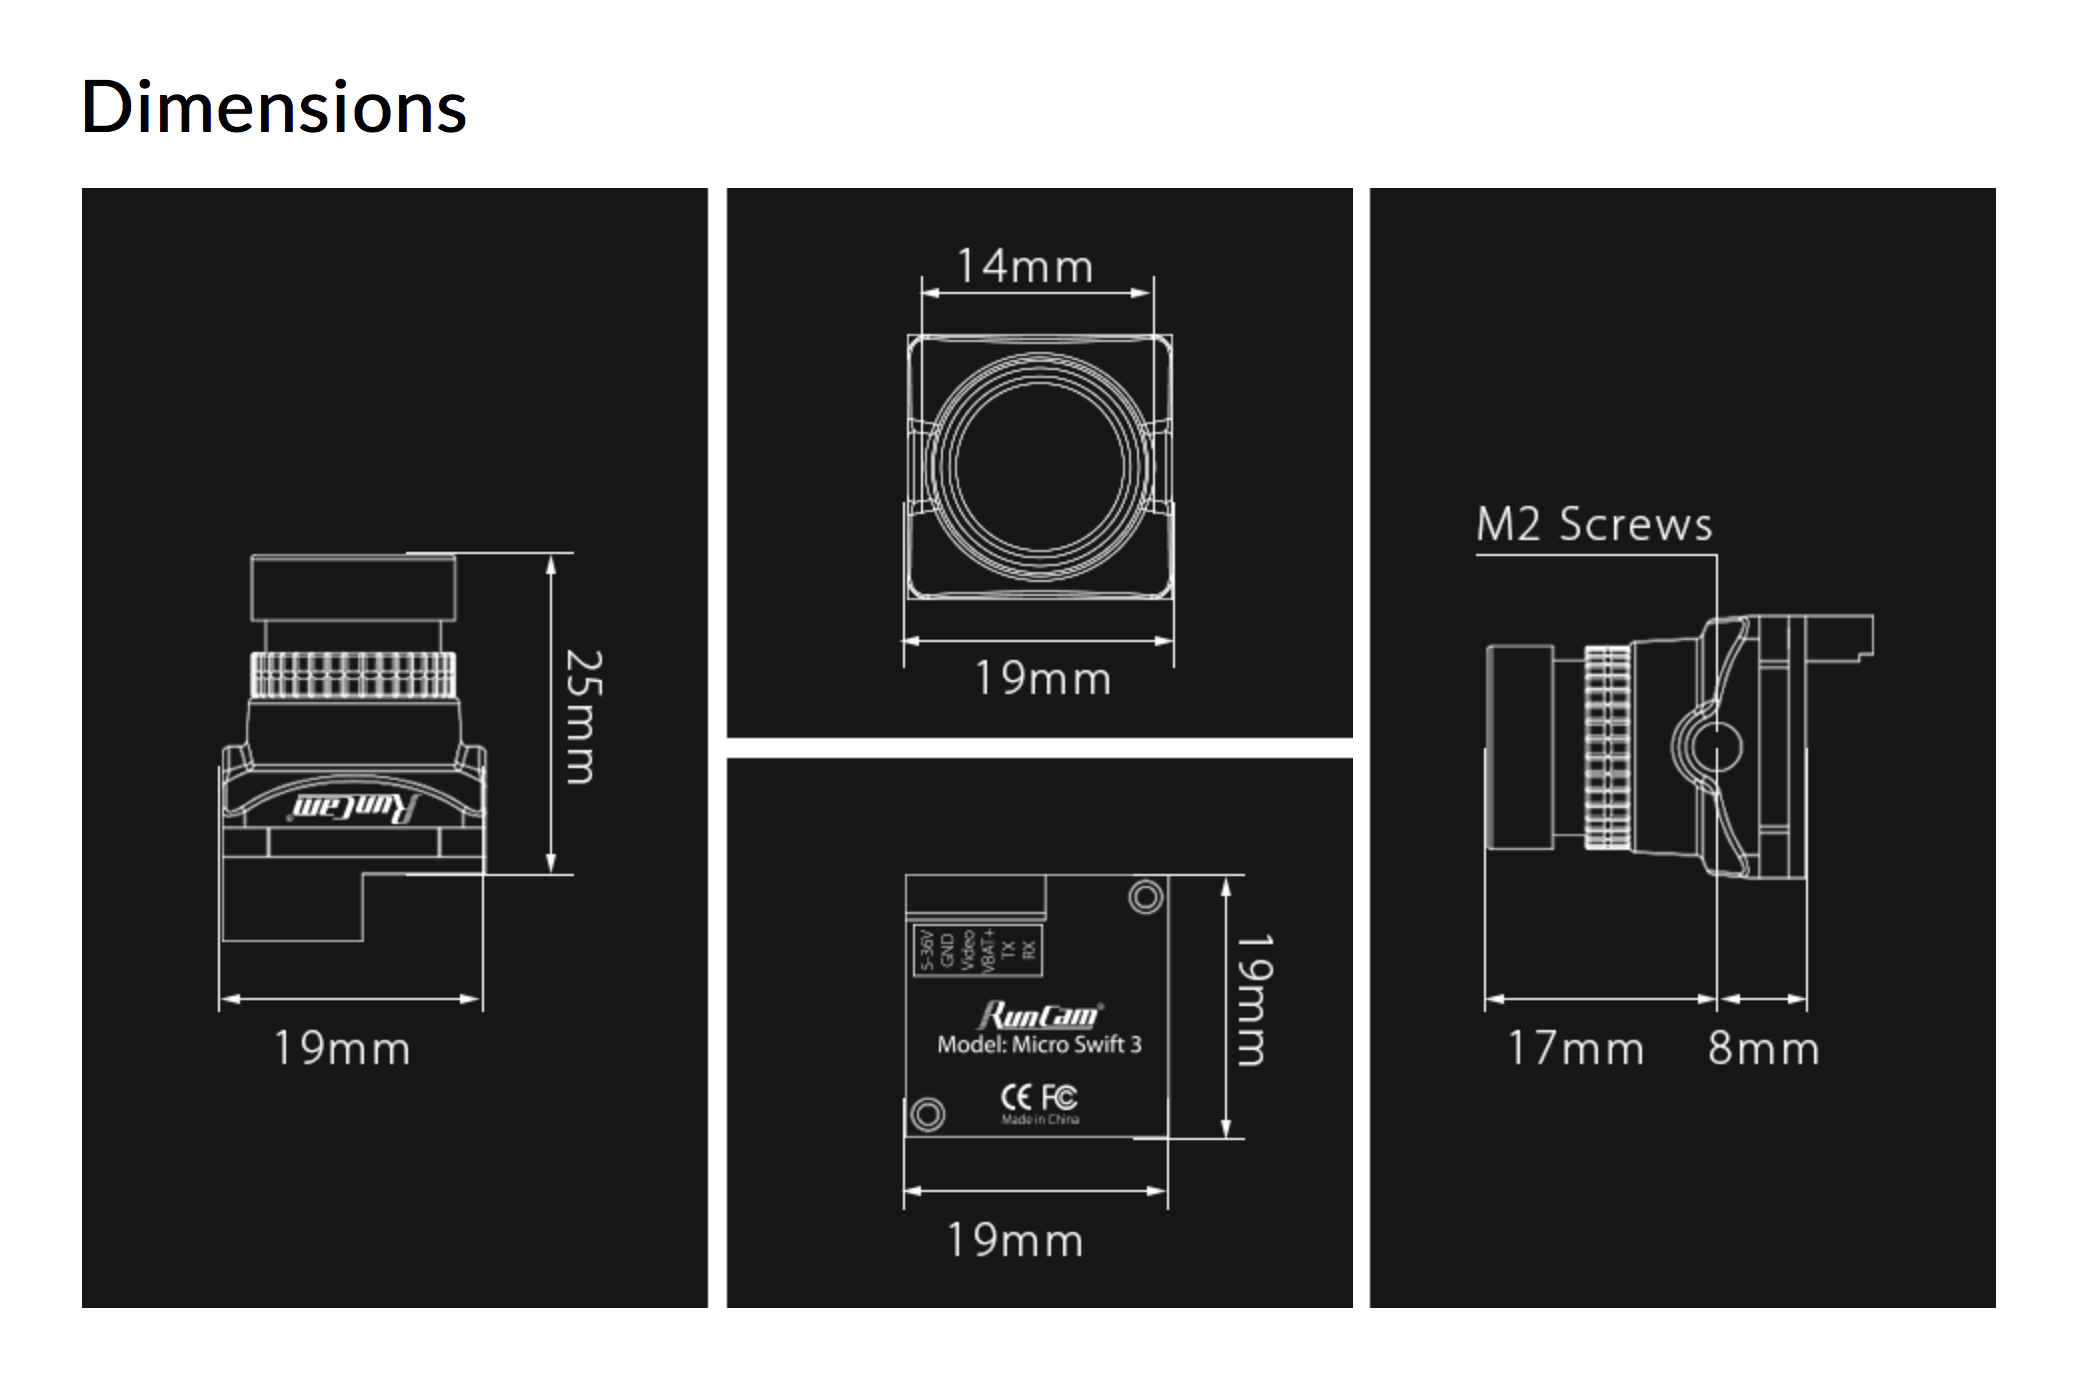 Dimensions of the Runcam Micro Swift 3 fpv camera